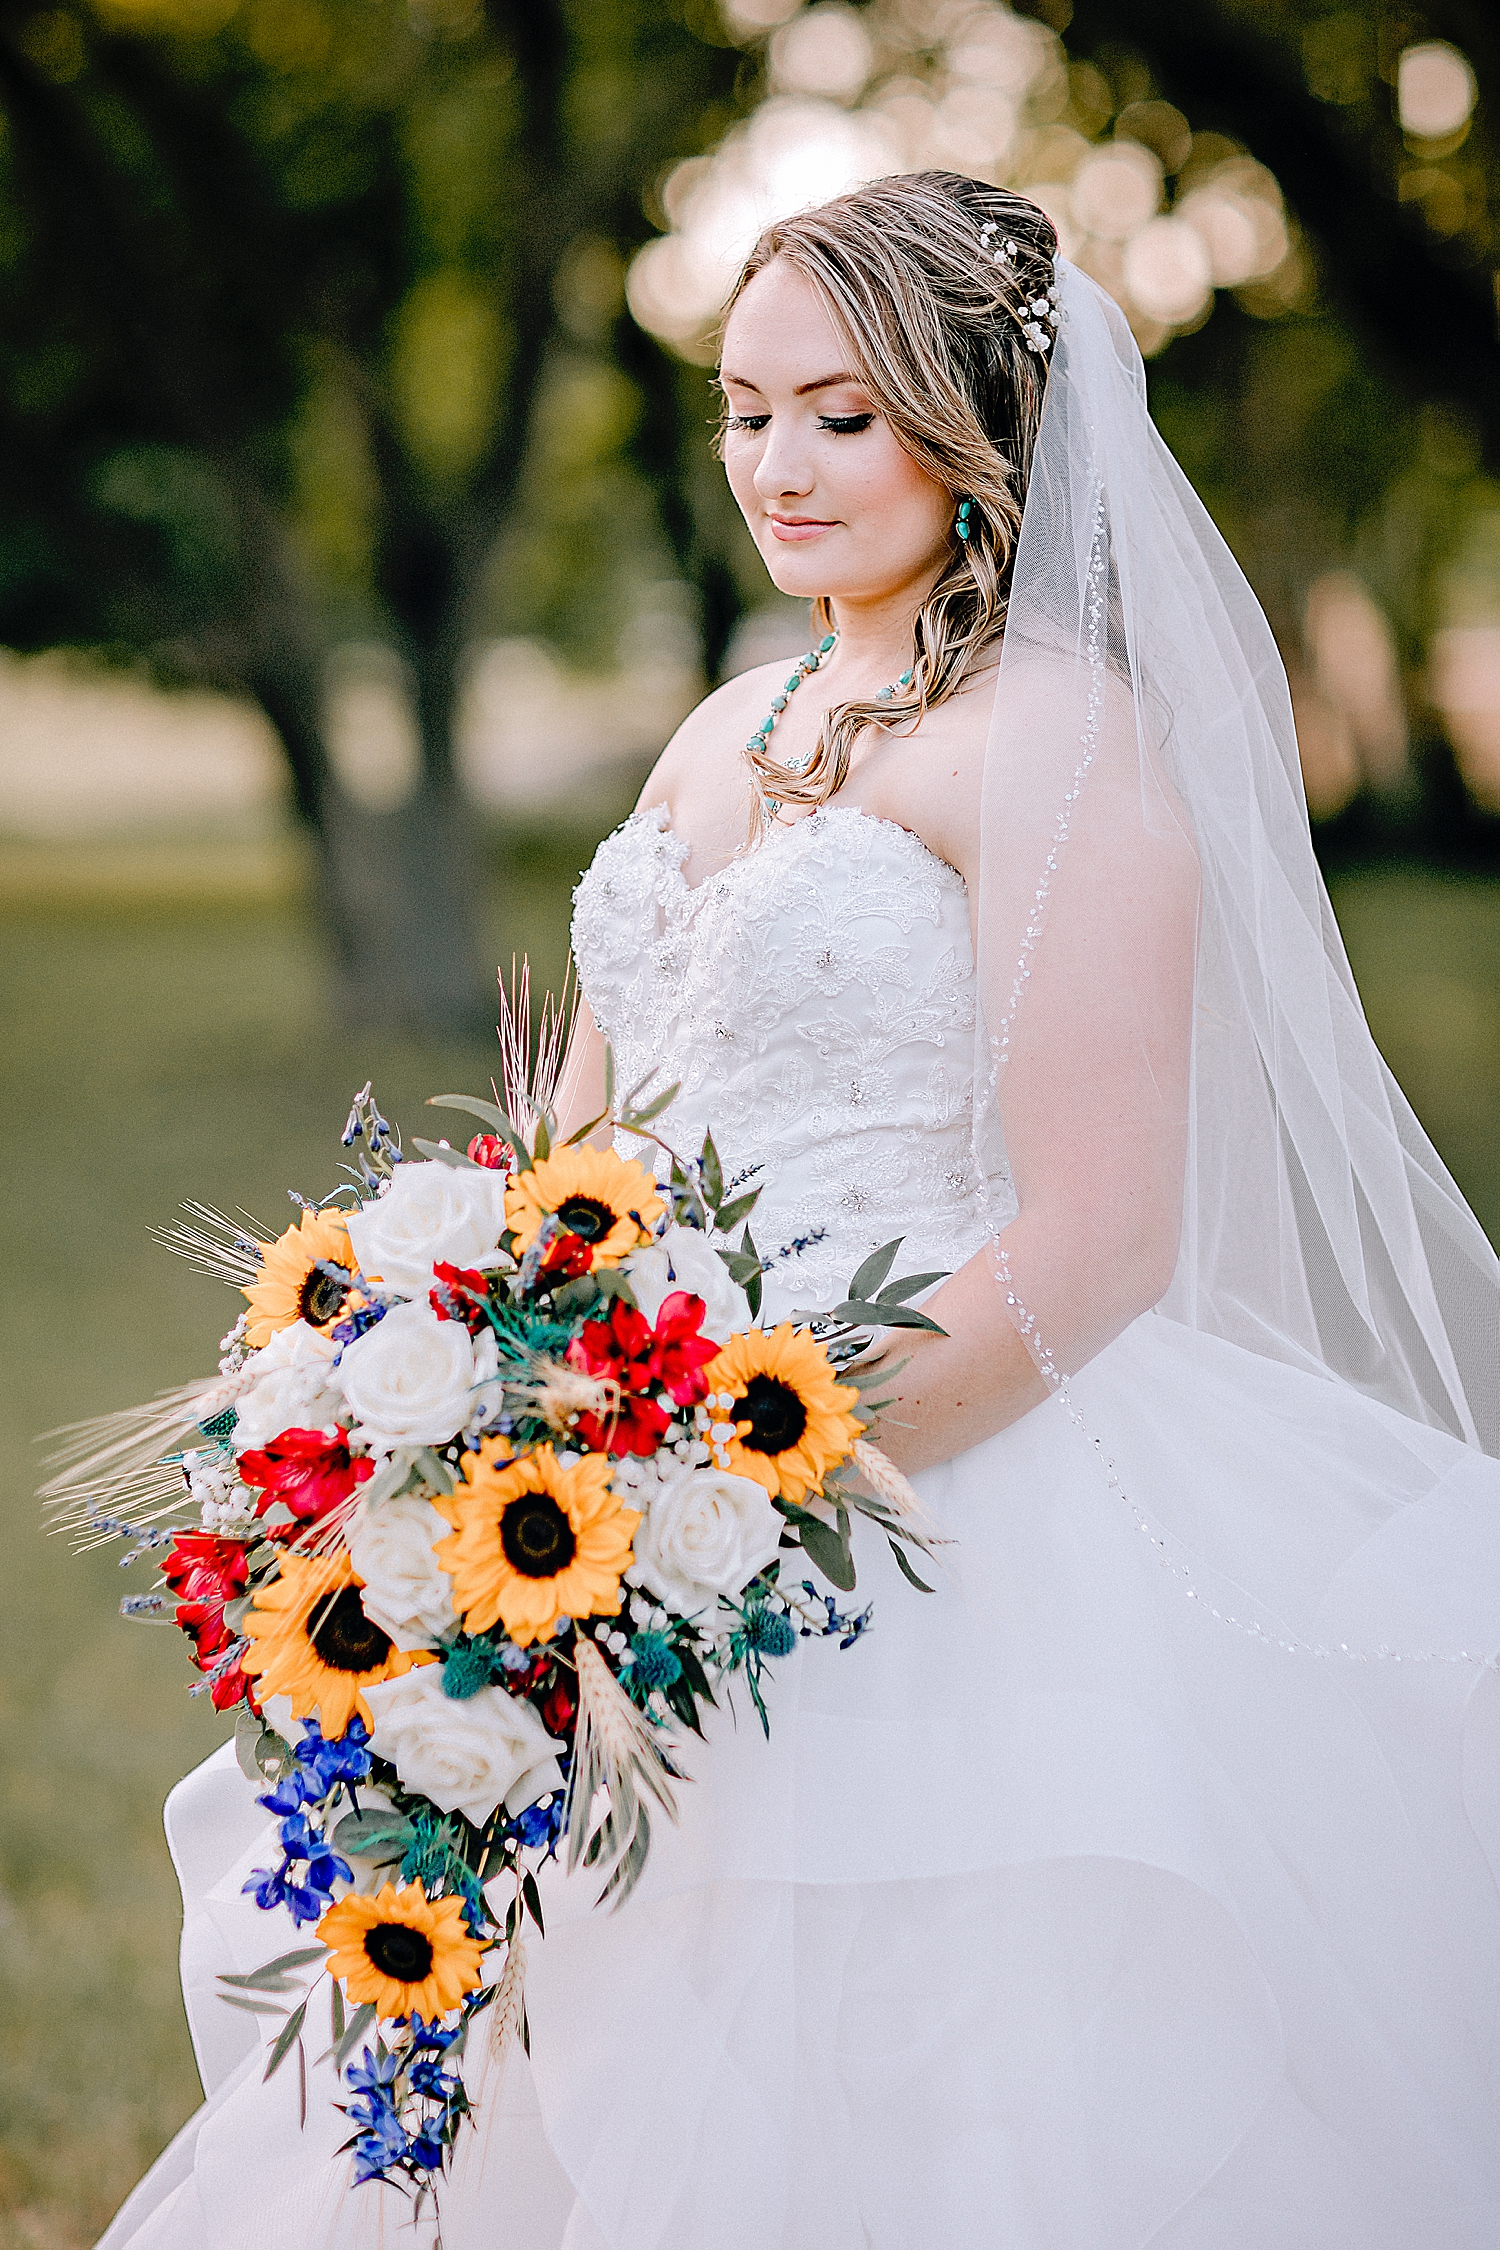 Carly-Barton-Photography-Texas-Bridals-Boerne-Rustic-Wedding-Photos_0015.jpg